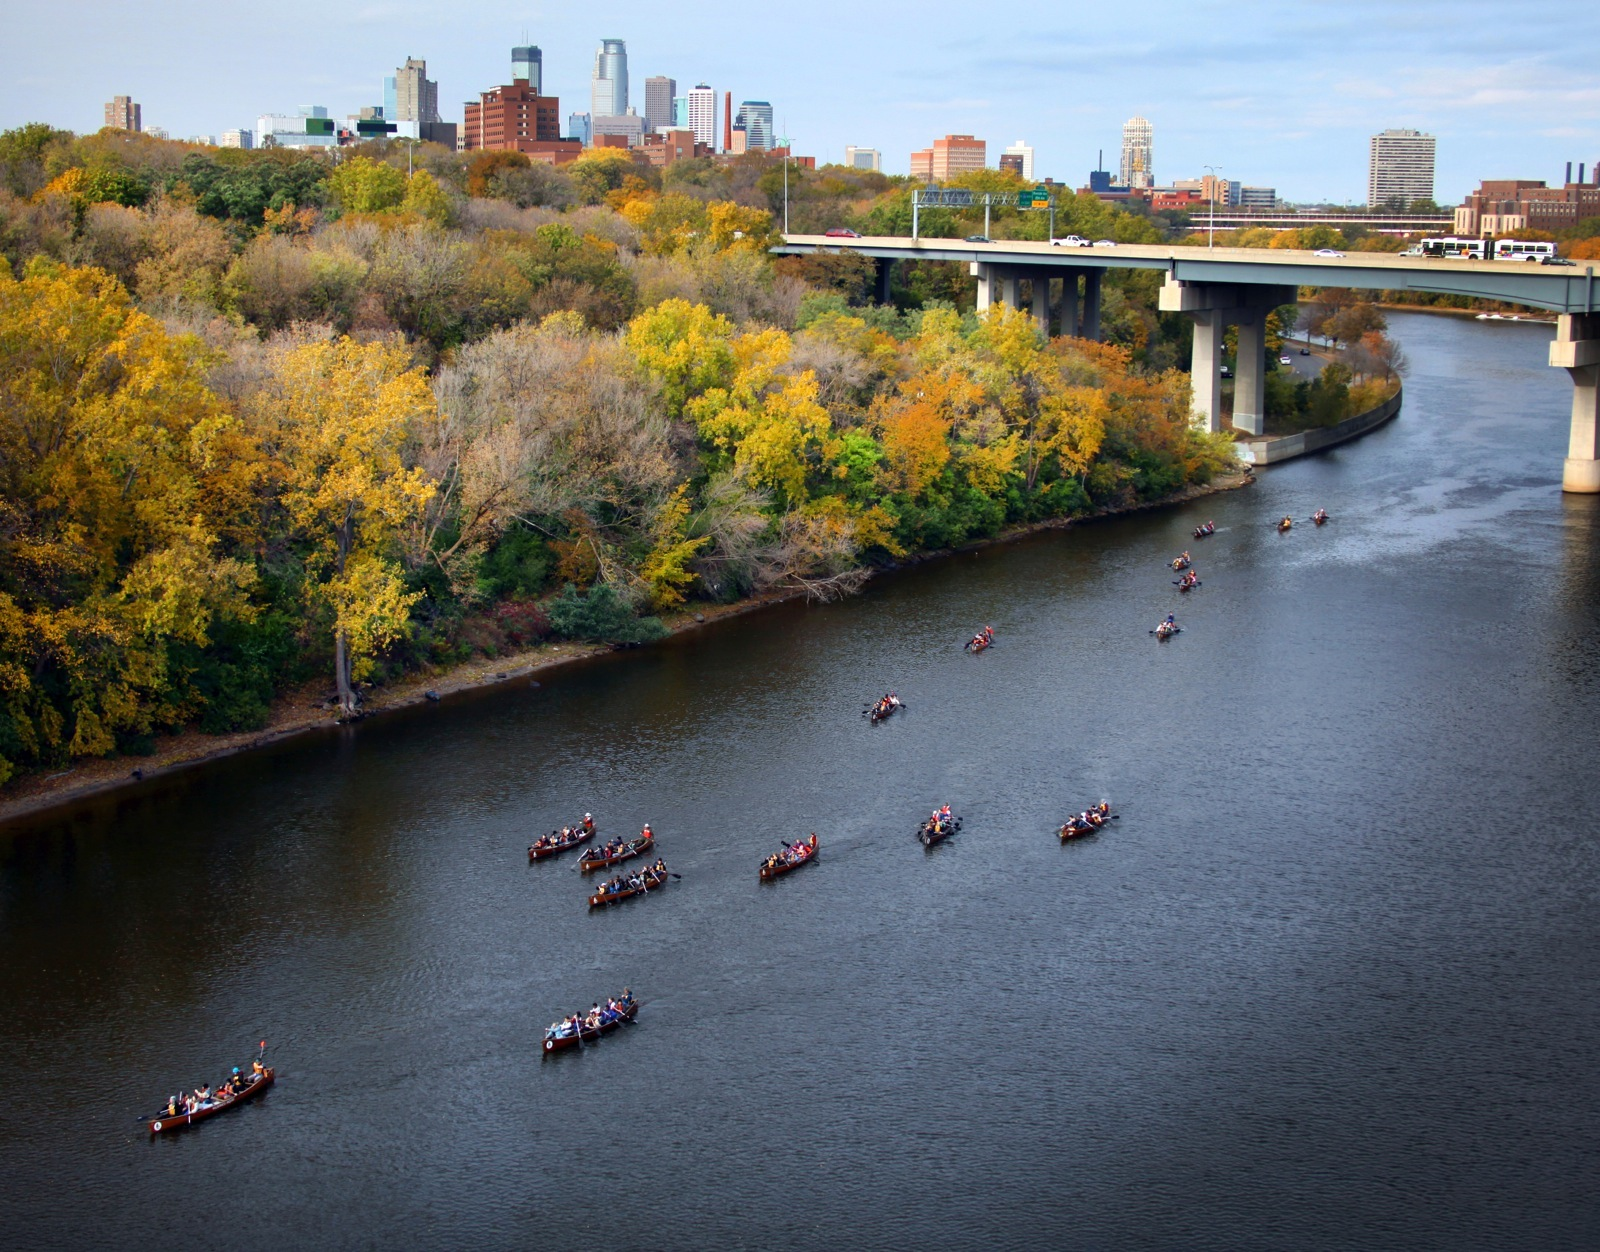 People on canoes in the Fall